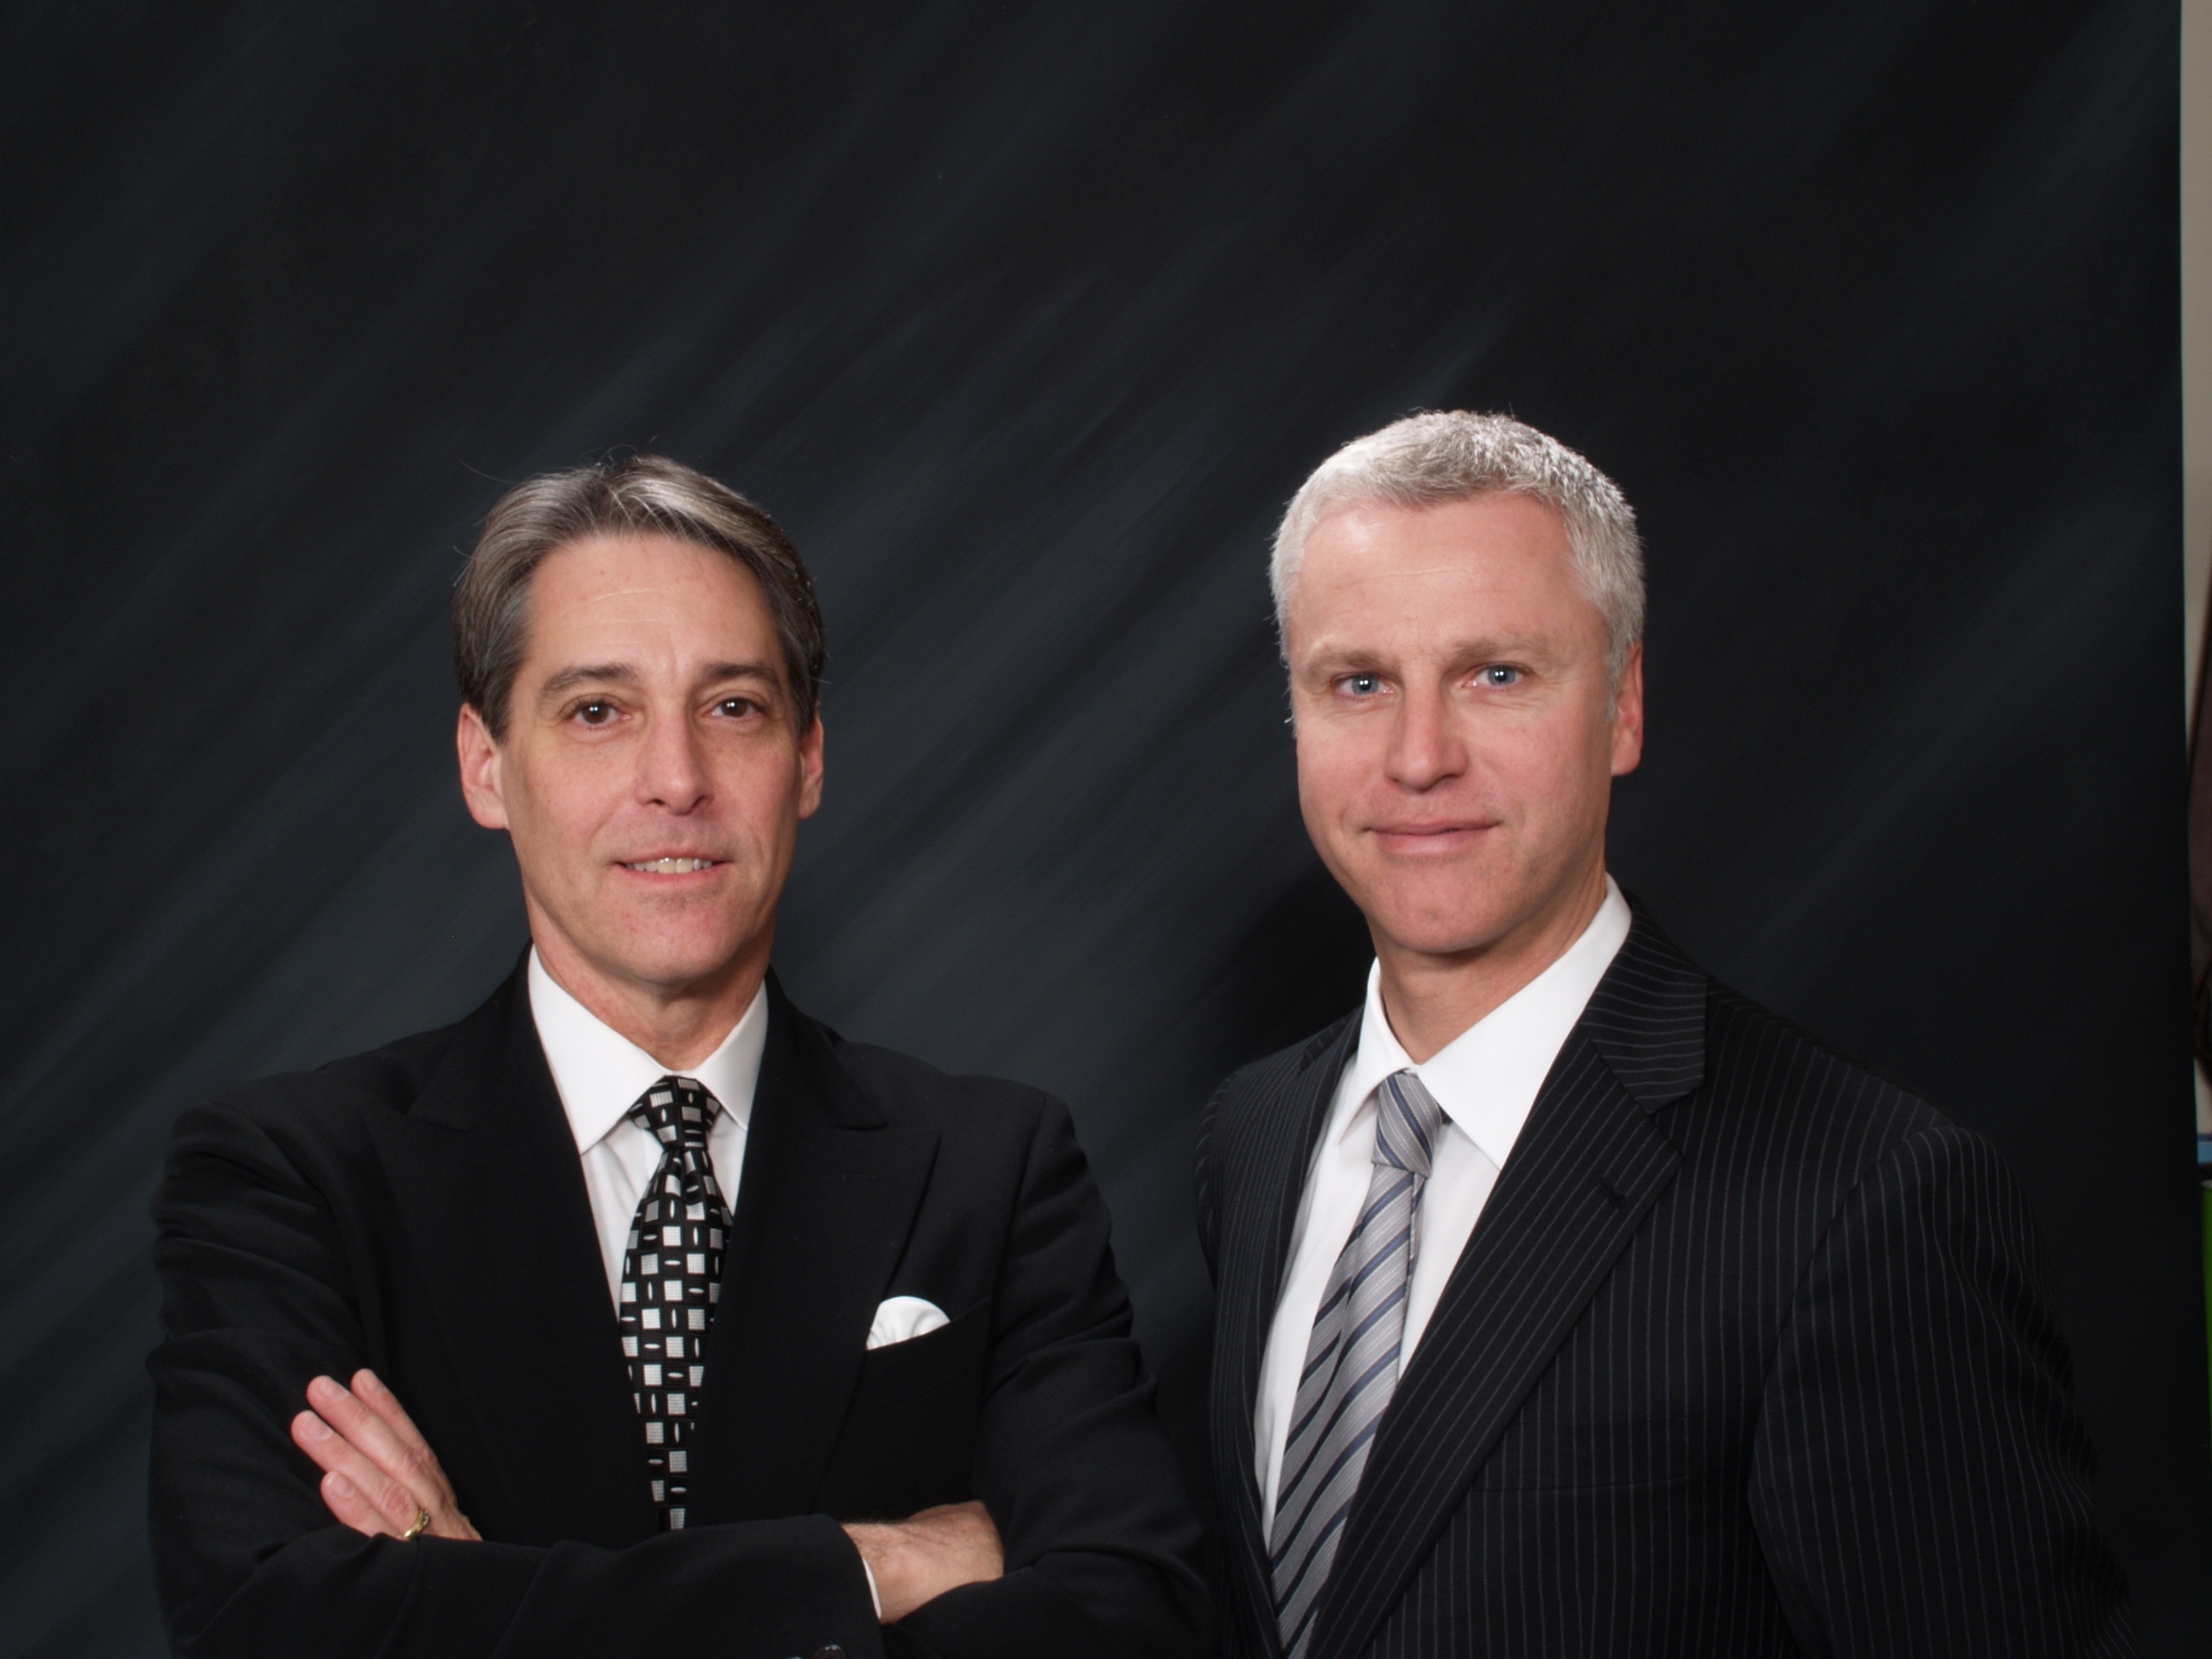 Attorneys Gold & Witham